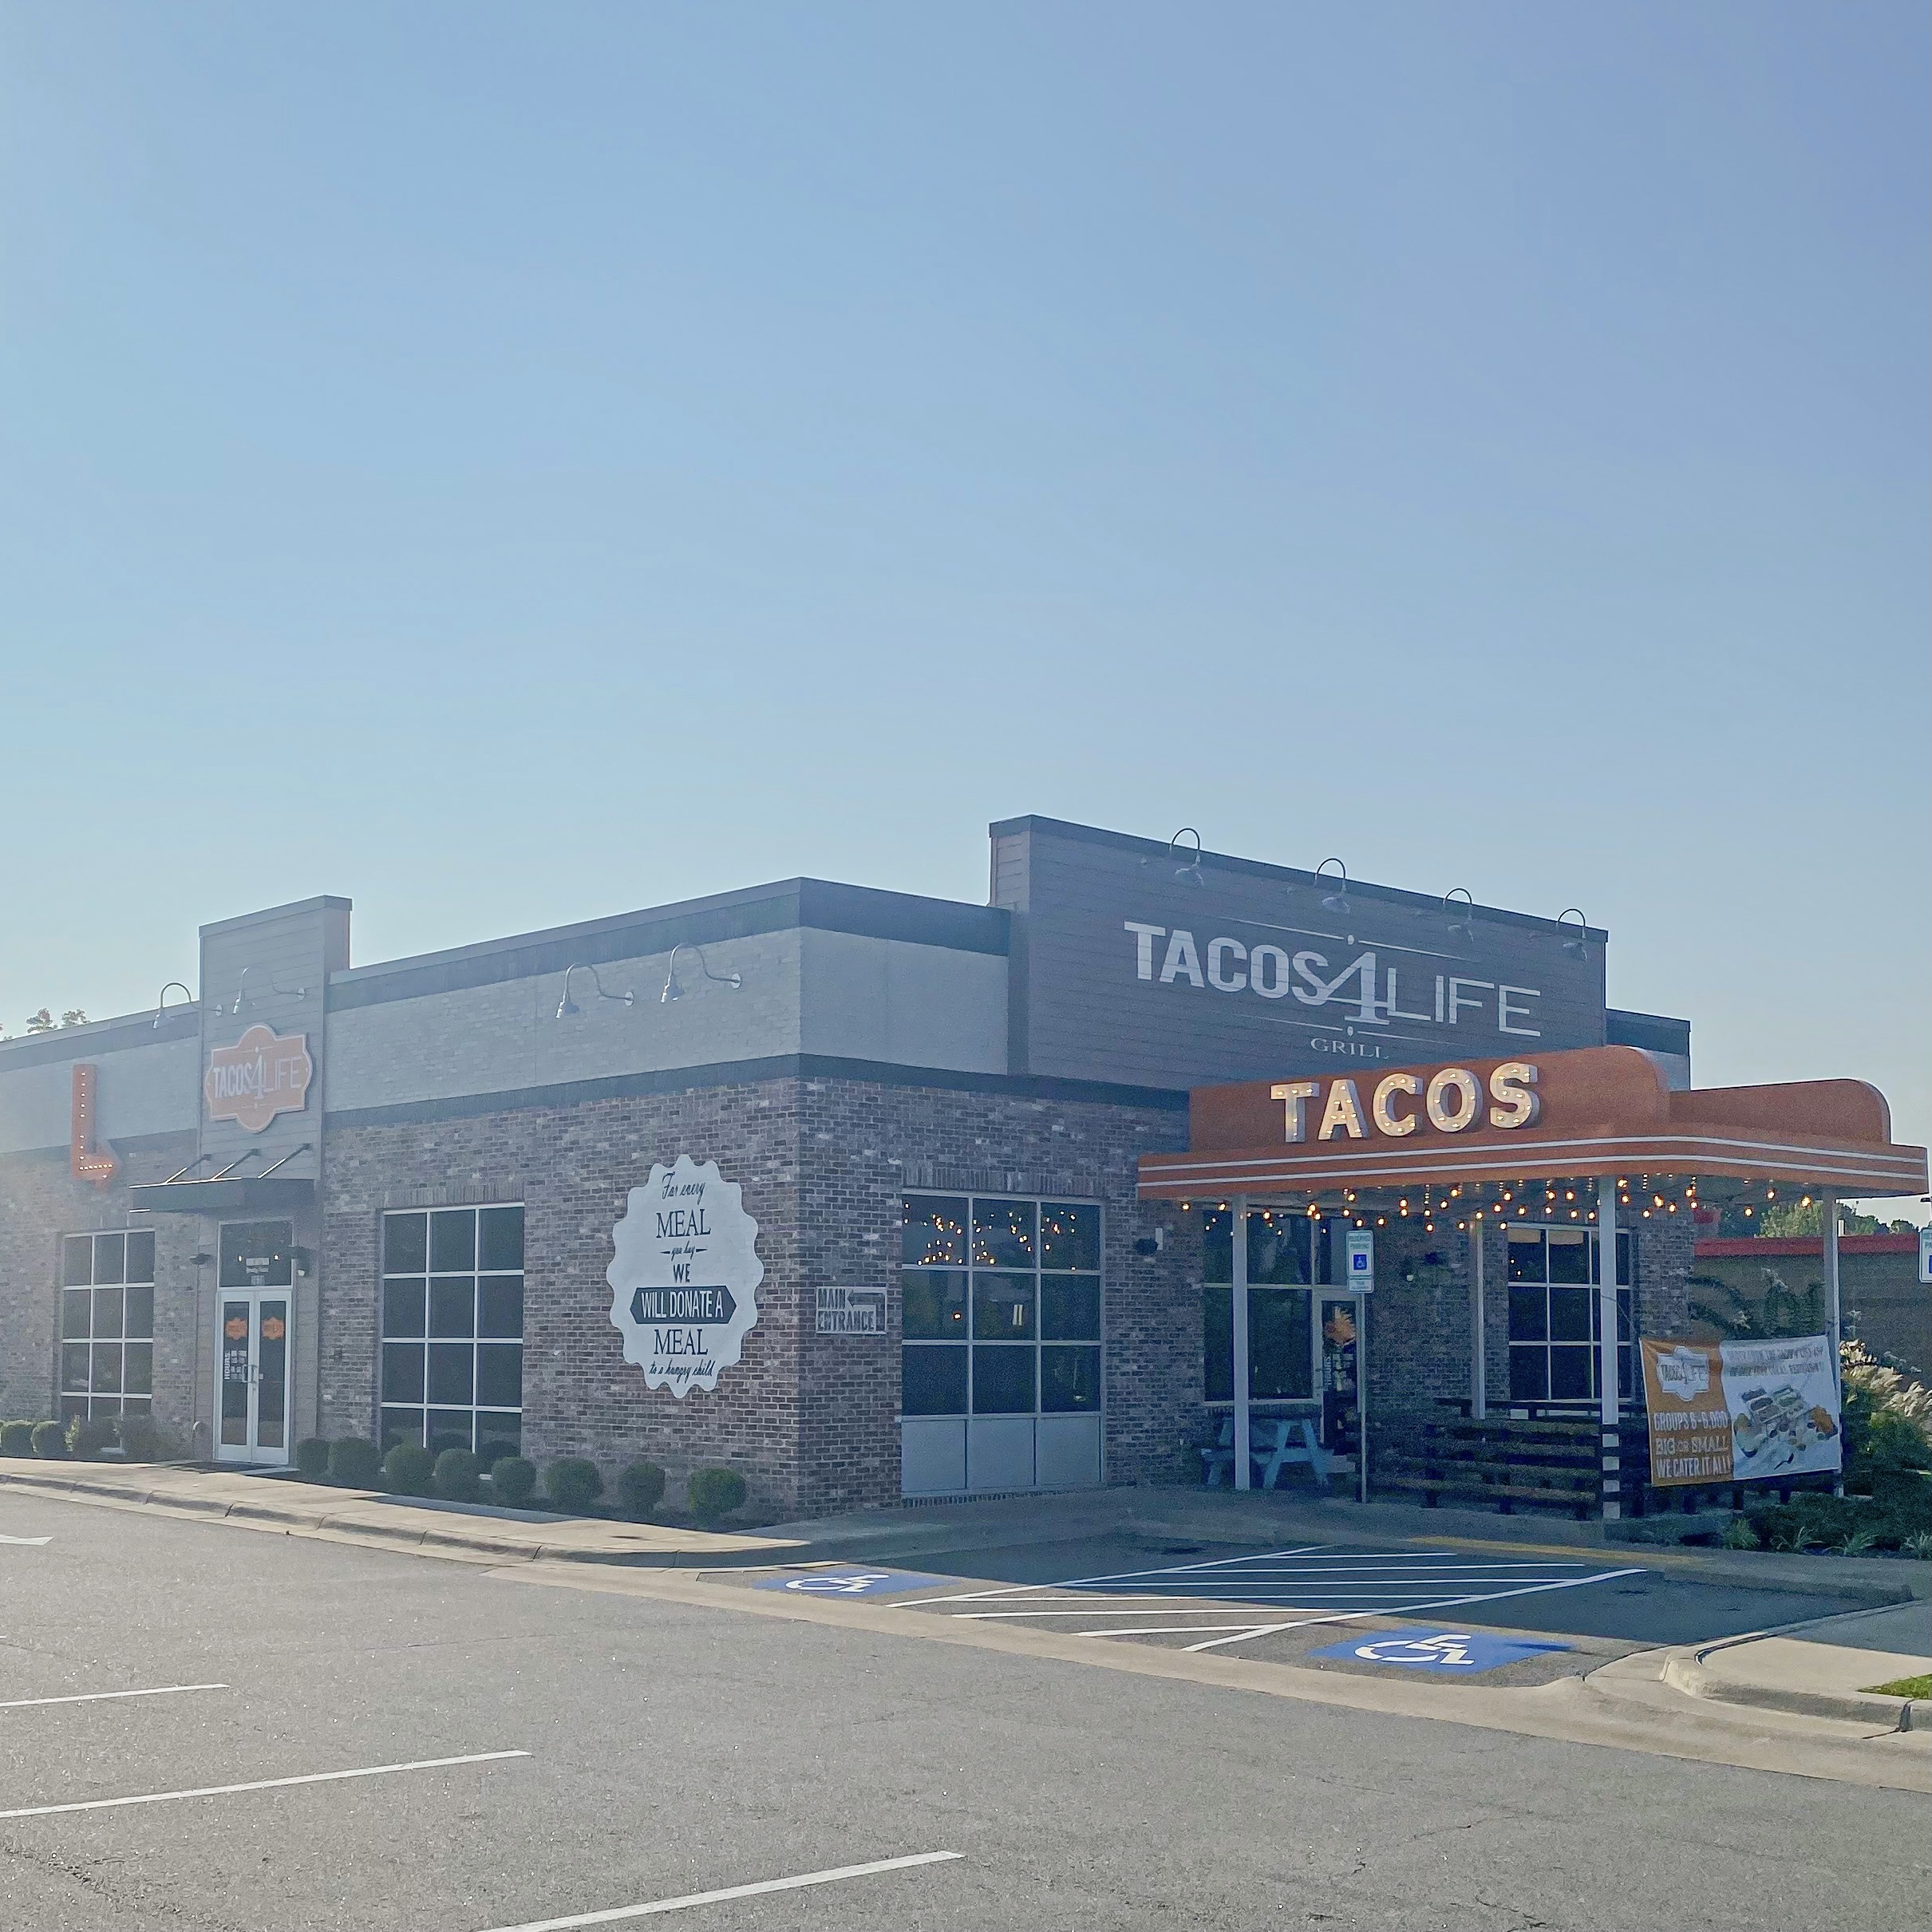 Tacos 4 Life in Little Rock, AR on Shackleford